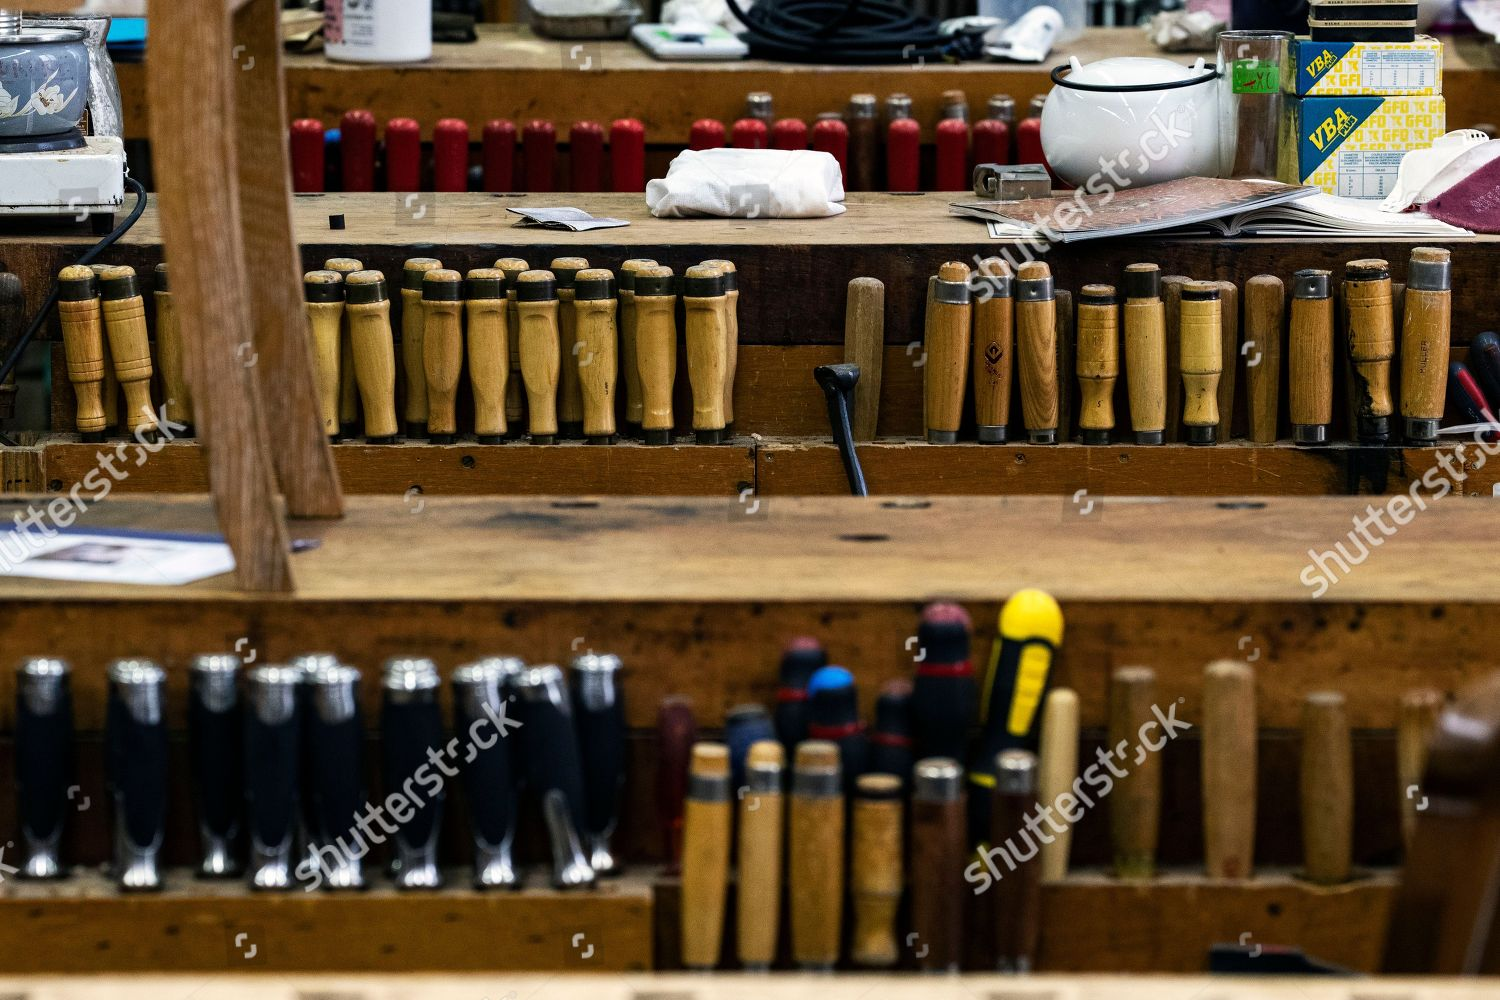 Mobilier France Multiple Tools Wait Be Used Next Workbenches Editorial Stock Photo